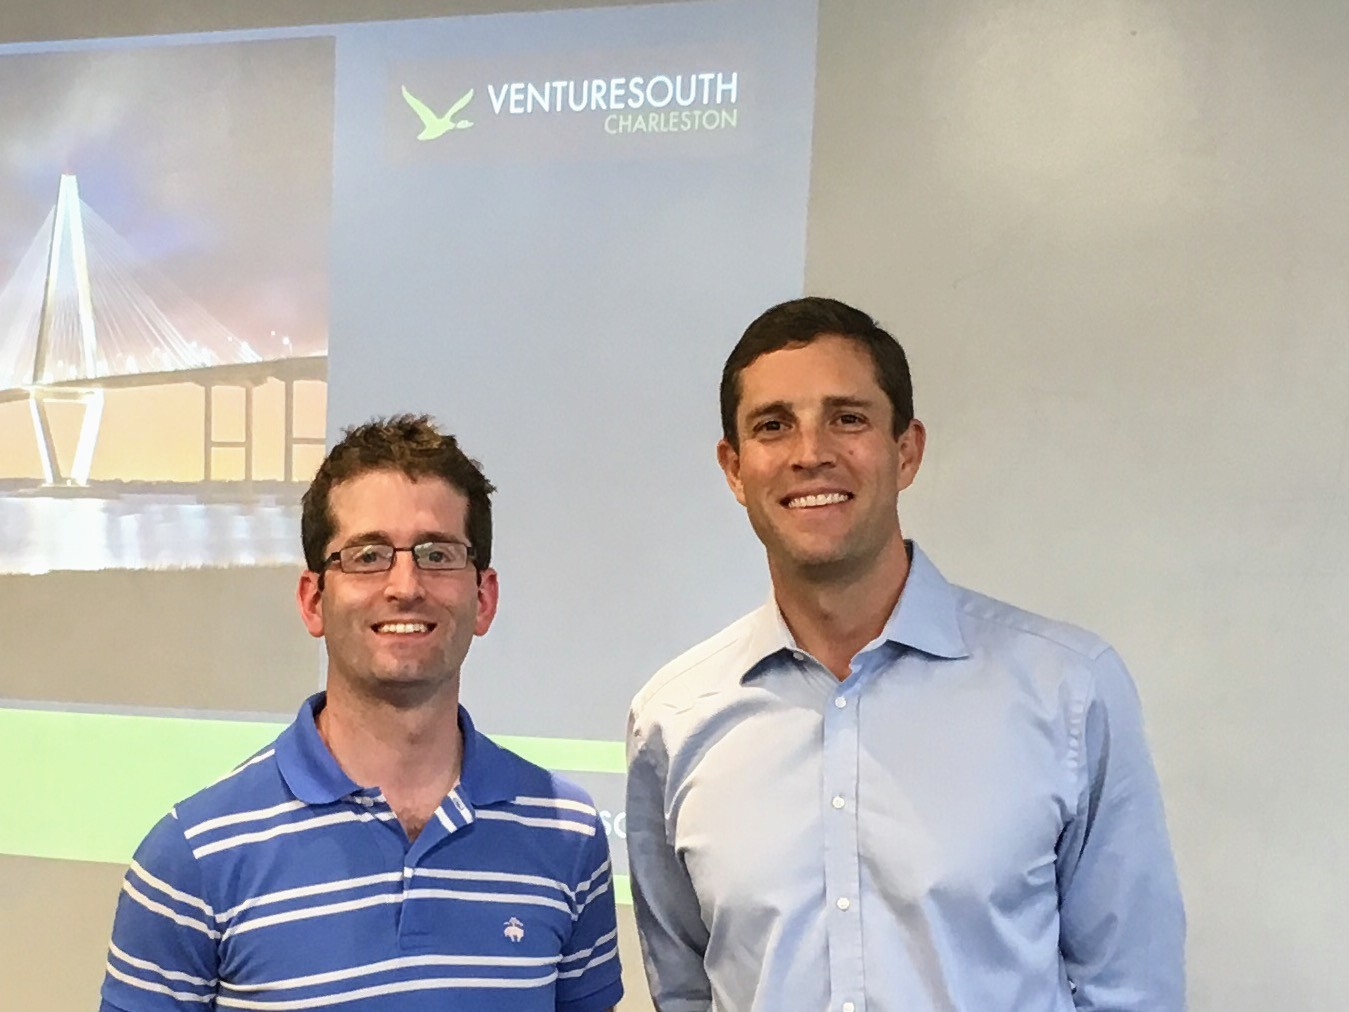 Paul Clark, managing director, and Eric Thome, local director, help vet companies for VentureSouth, an angel investment firm headquartered in Greenville, which invests in Southeastern startups. (Photo/Thomas Heath)